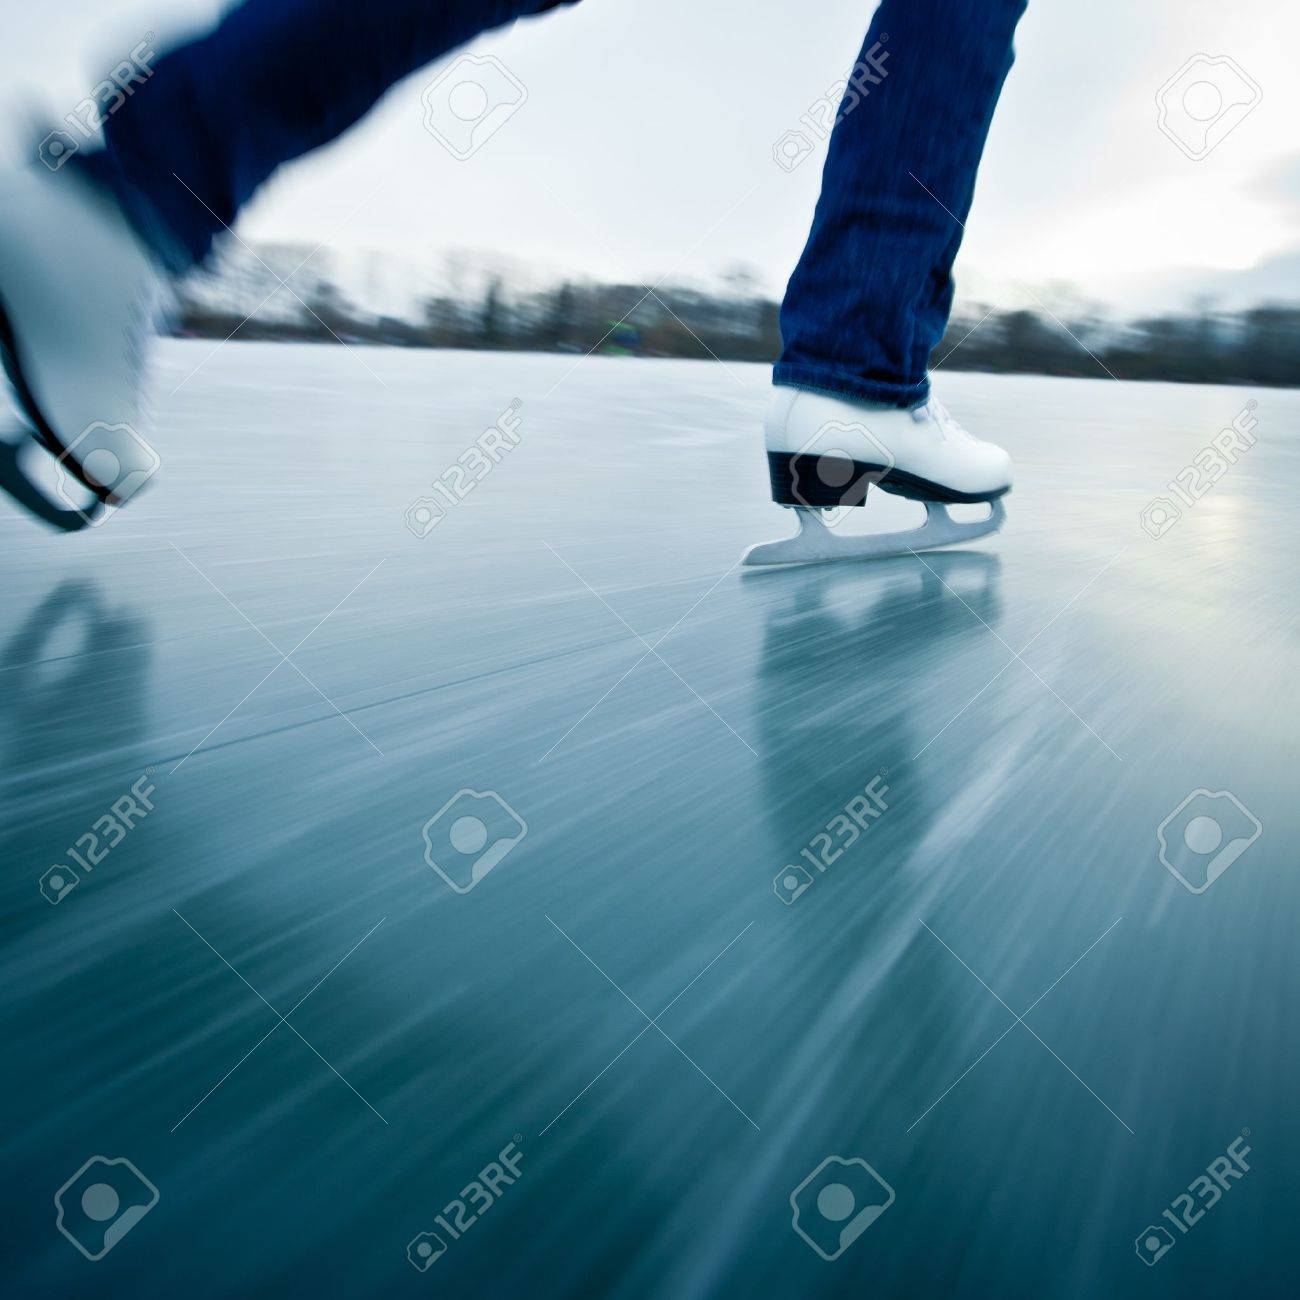 Young woman ice skating outdoors on a pond on a freezing winter day Stock Photo - 12405937